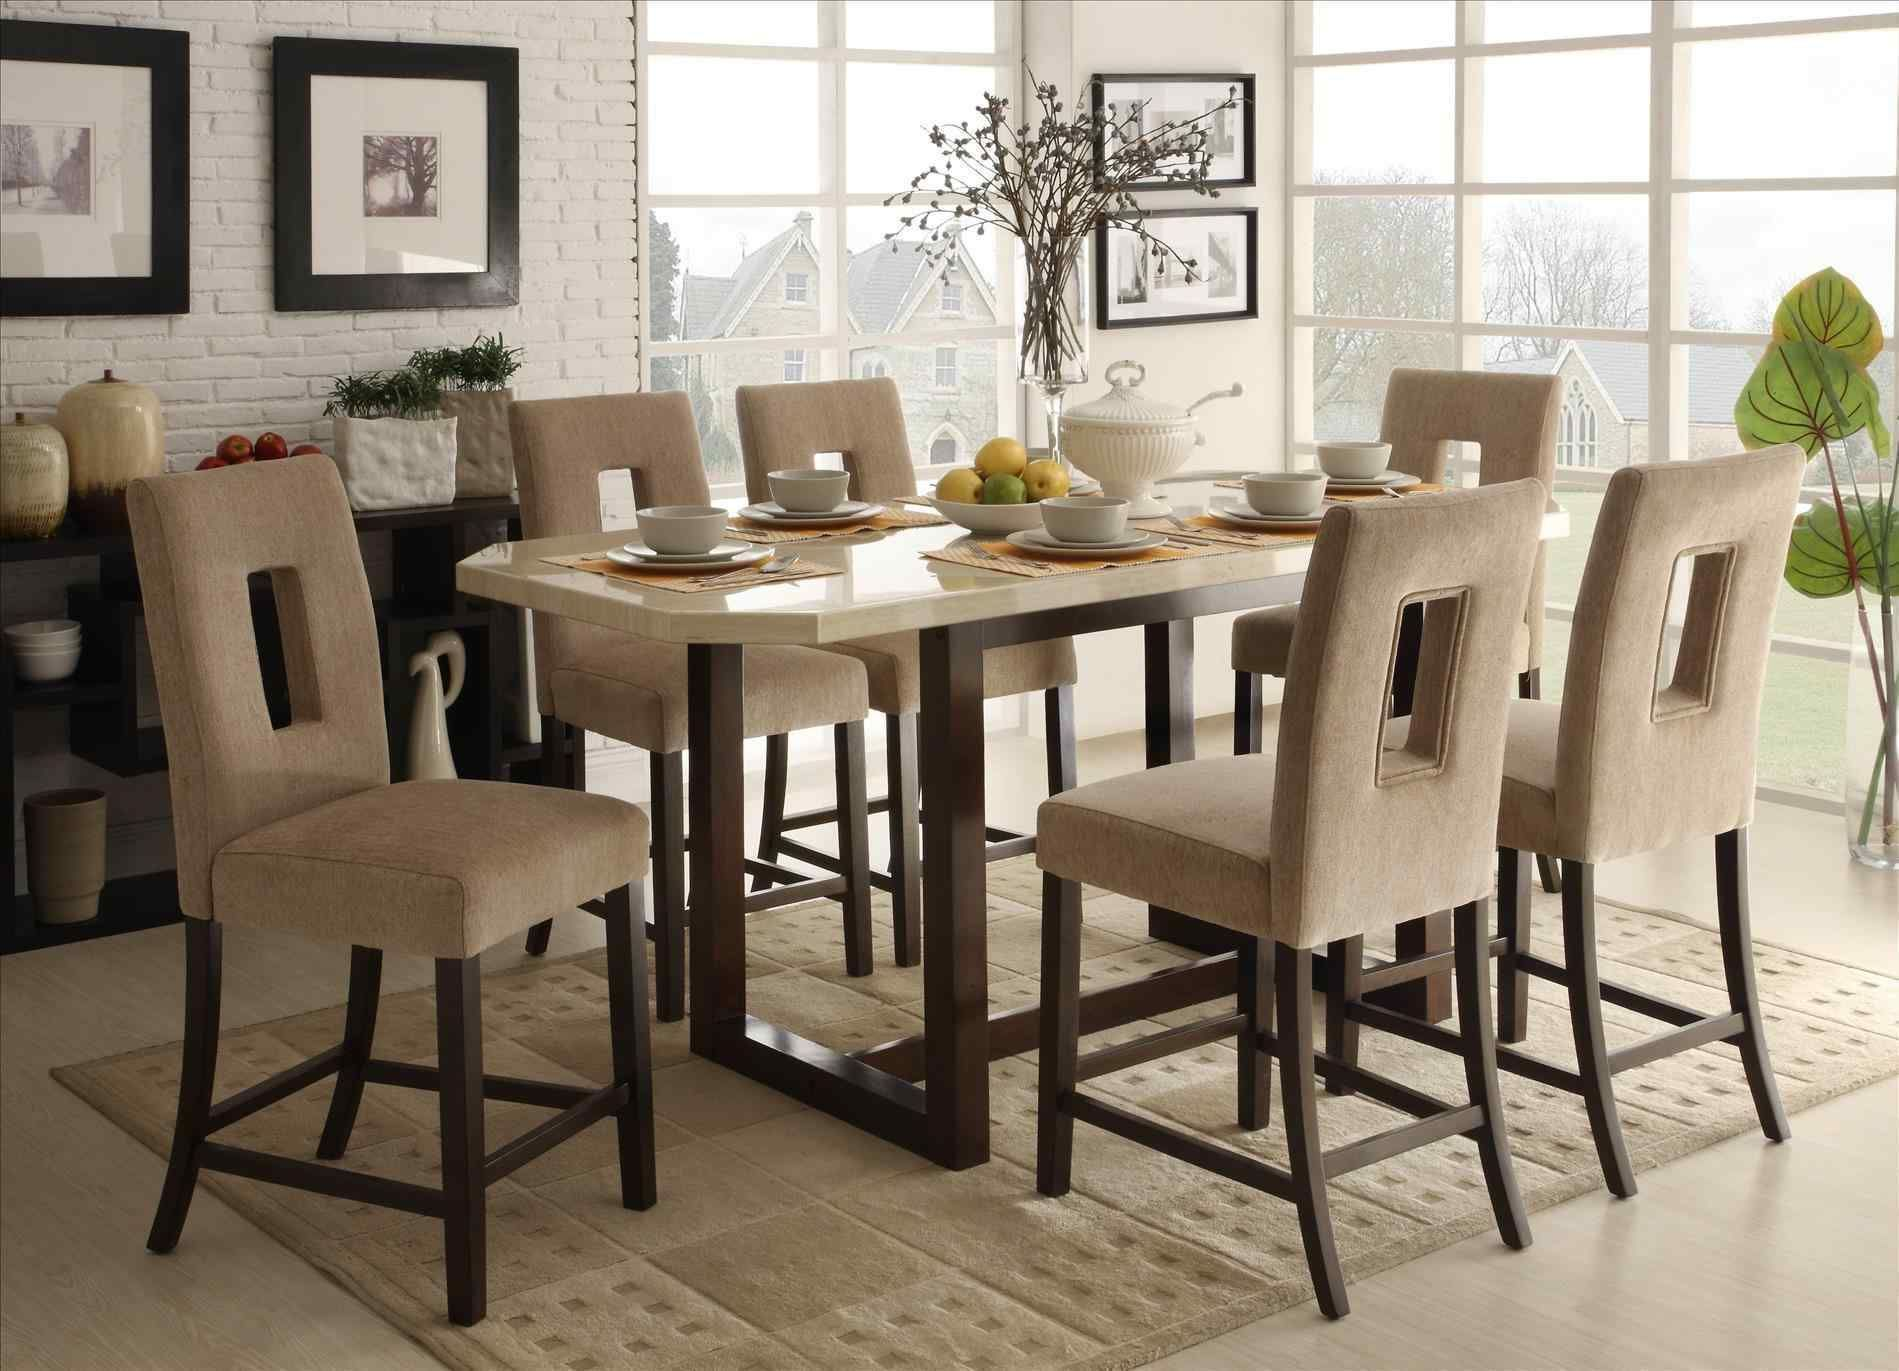 9 Wonderful White Dining Room Table Seats 9 — BreakPR   Counter ...